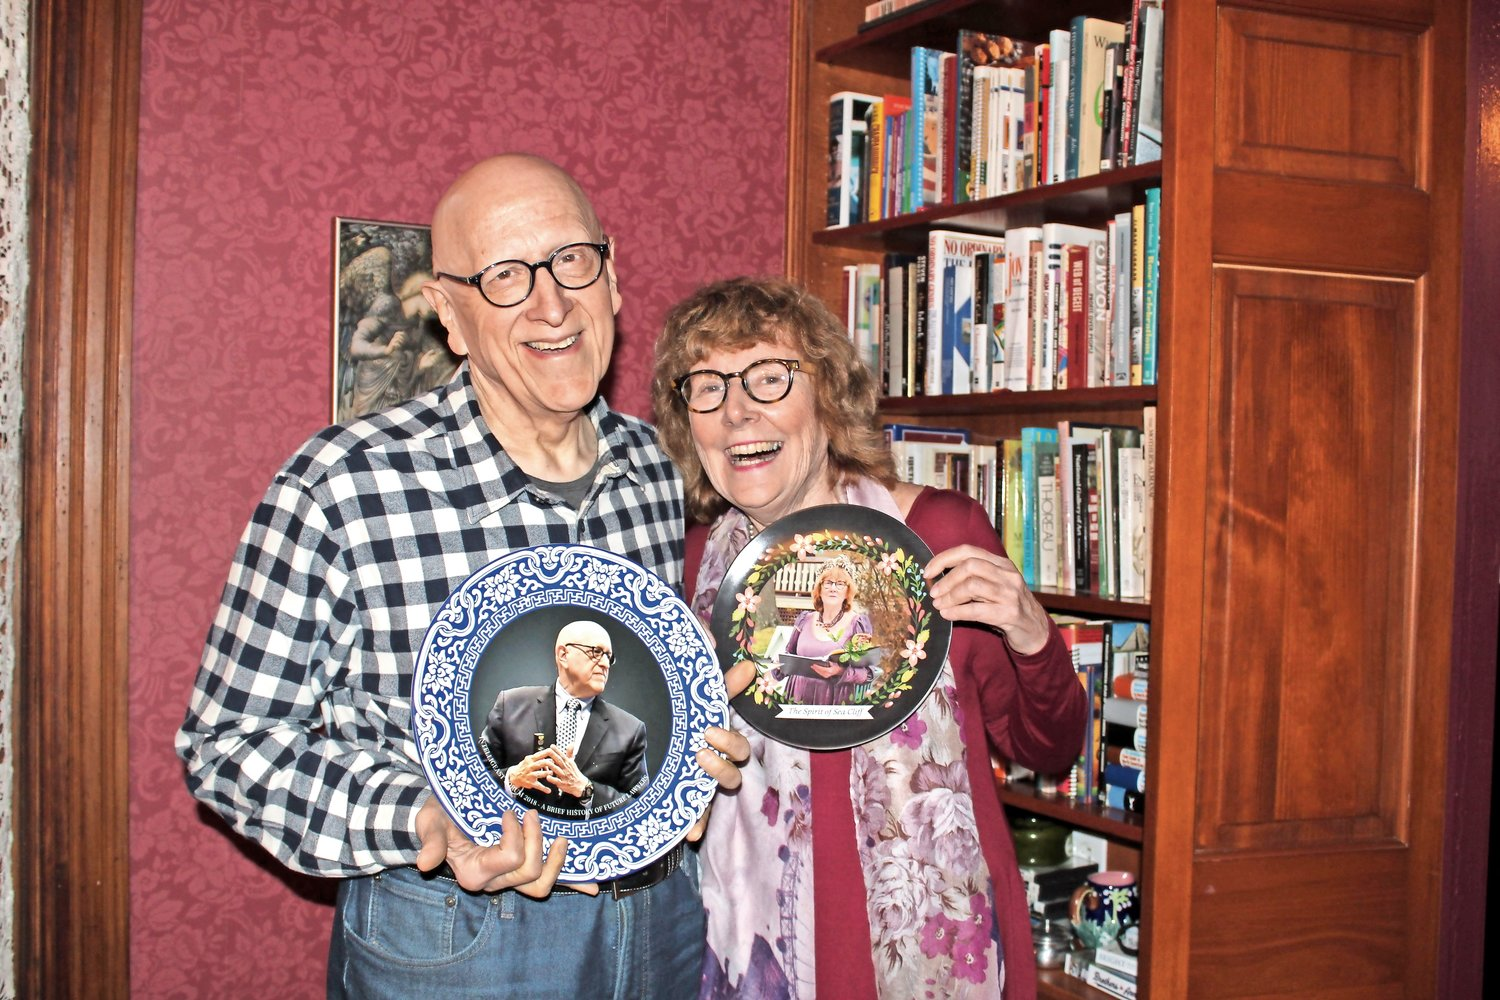 When Dan spoke at a conference in Shanghai in 2018 he was gifted a piece of China displaying his portrait. Shortly after, Ann was gifted her own plate by her friends so the two could match.